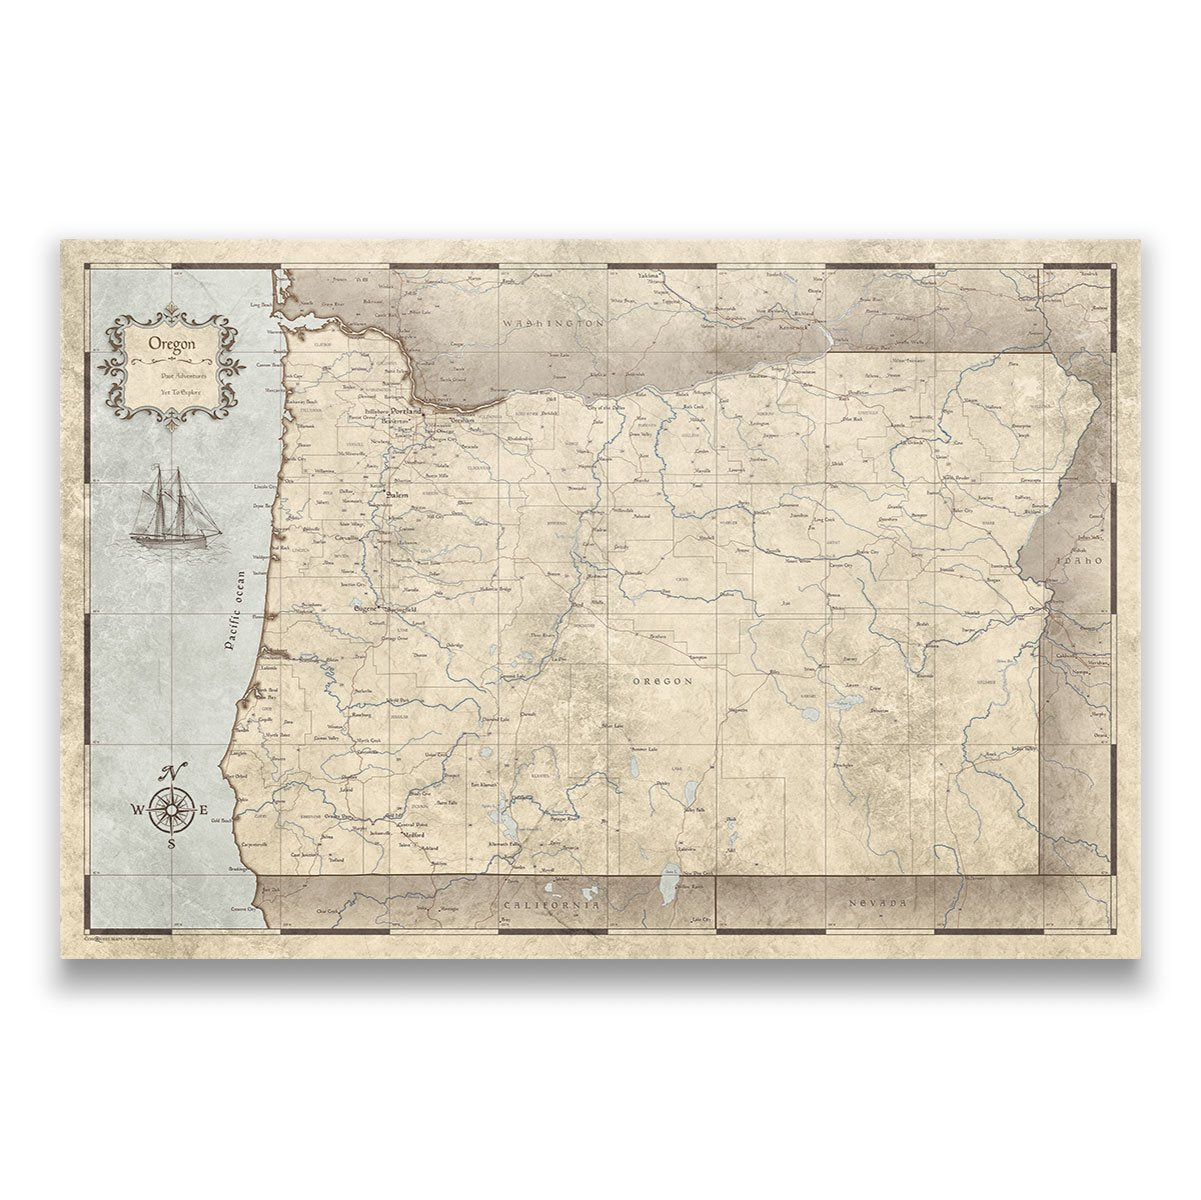 Vintage Oregon Map.Oregon Travel Map Pin Board With Push Pins Rustic Vintage